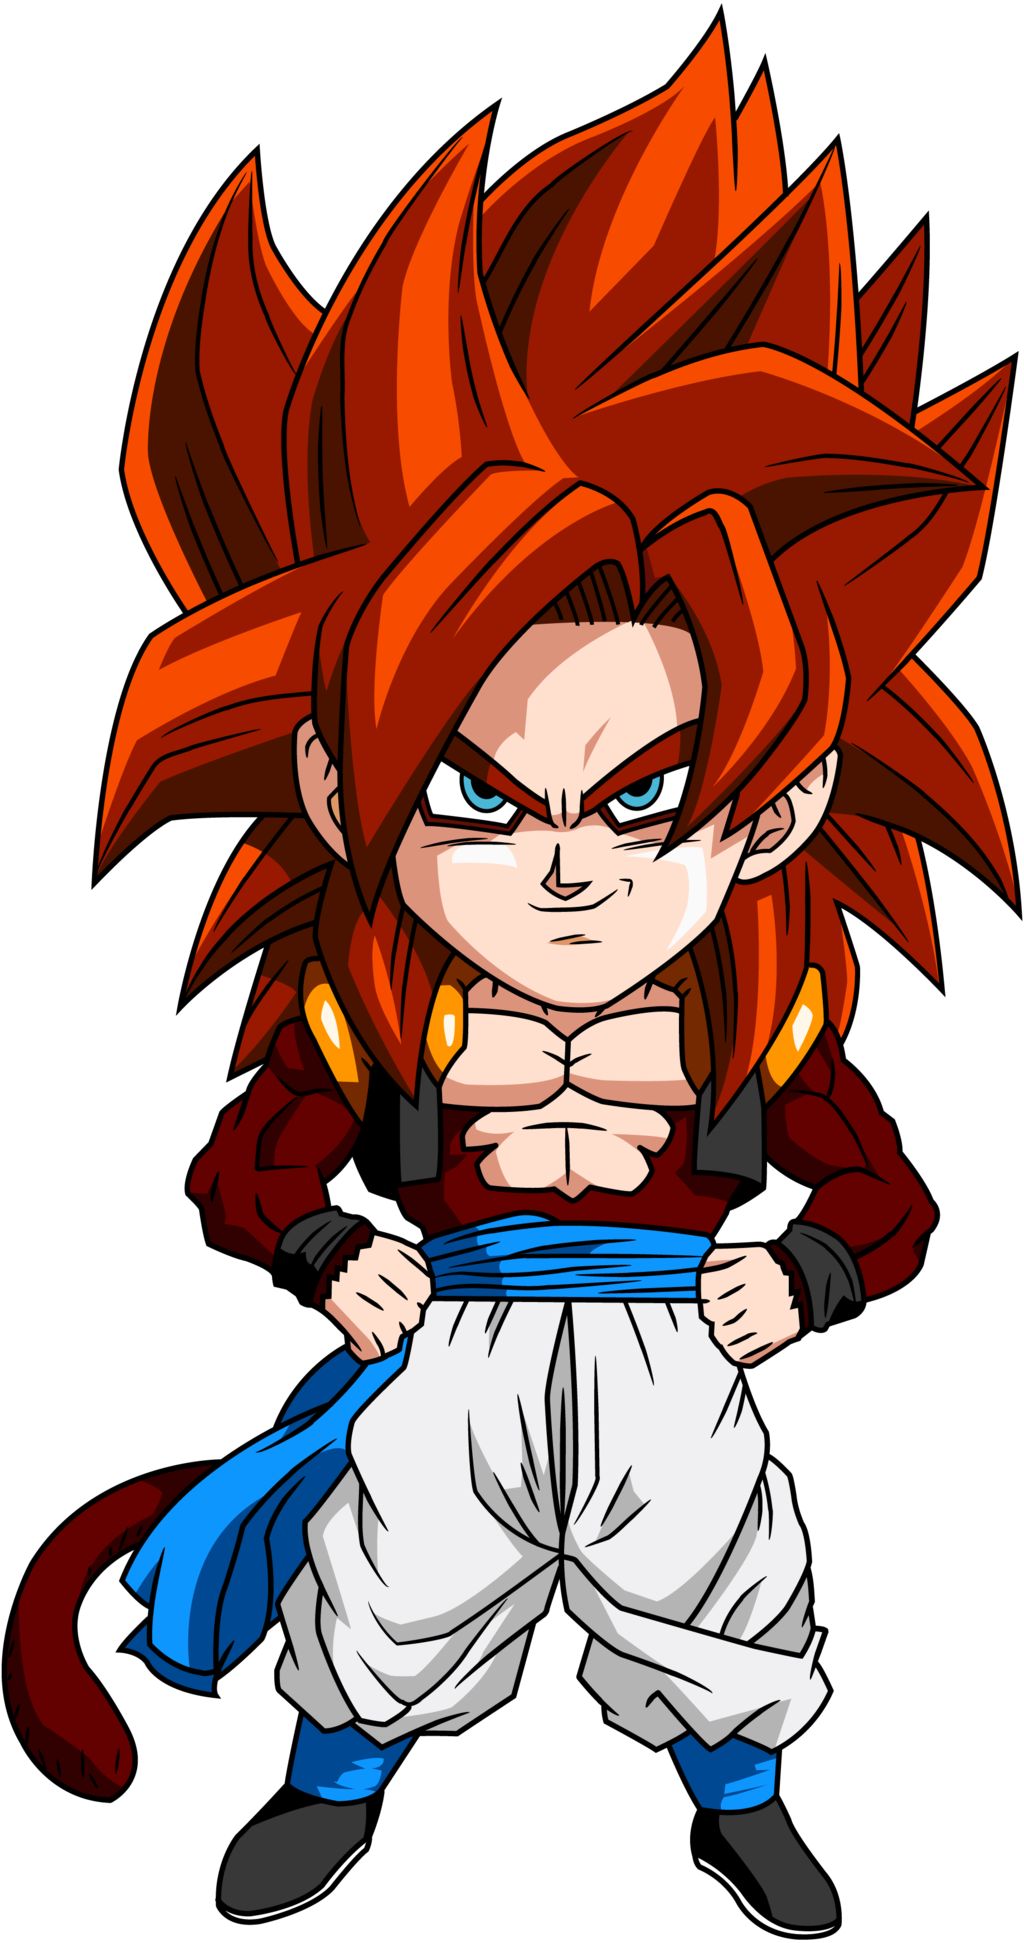 Gogeta Ssj4 Wallpaper Wallpapersafari